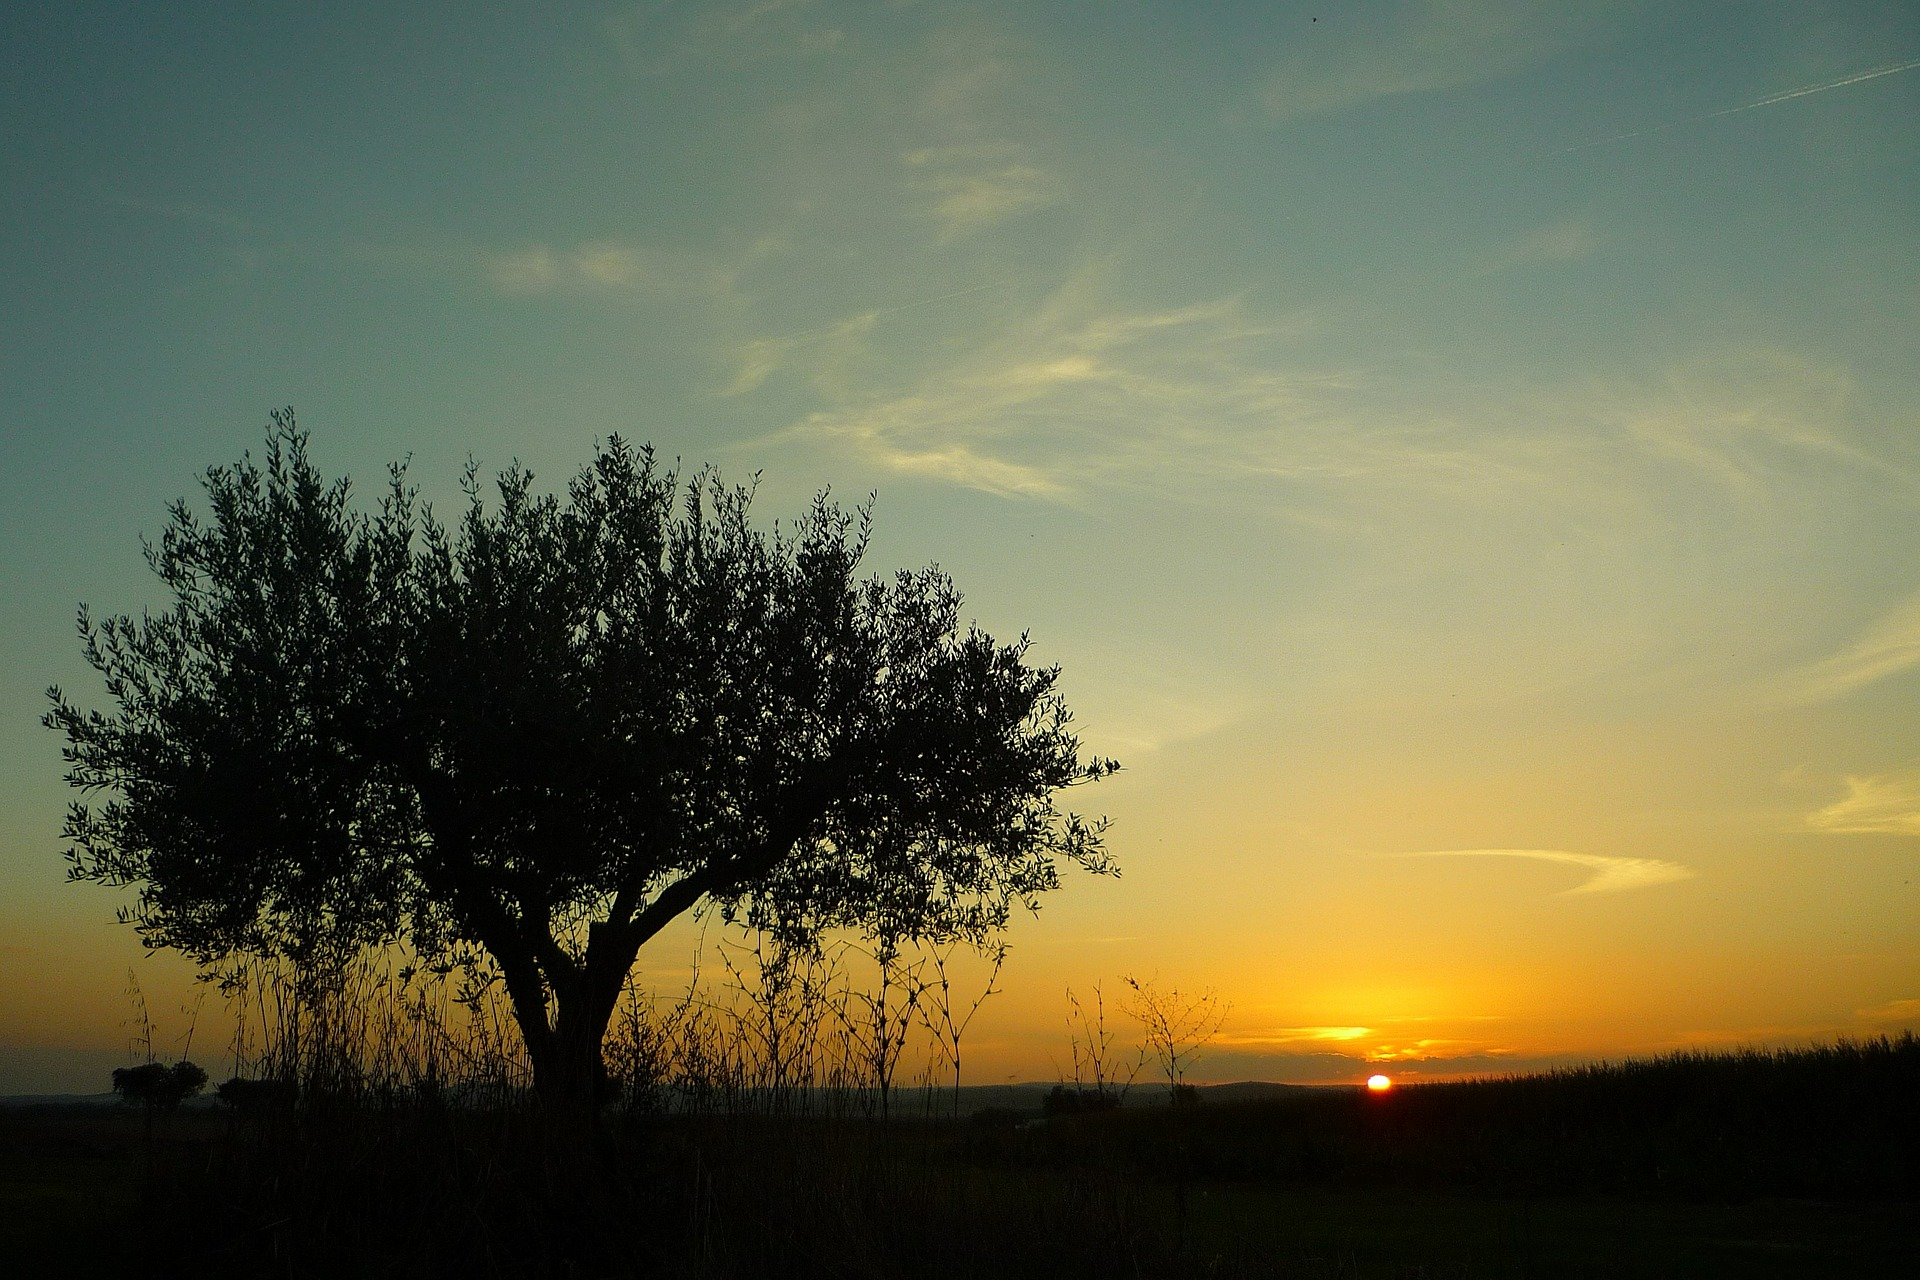 OLIVE POETRY SUNSET ON THE OLIVE GROVE TRADICION CENTENARIA